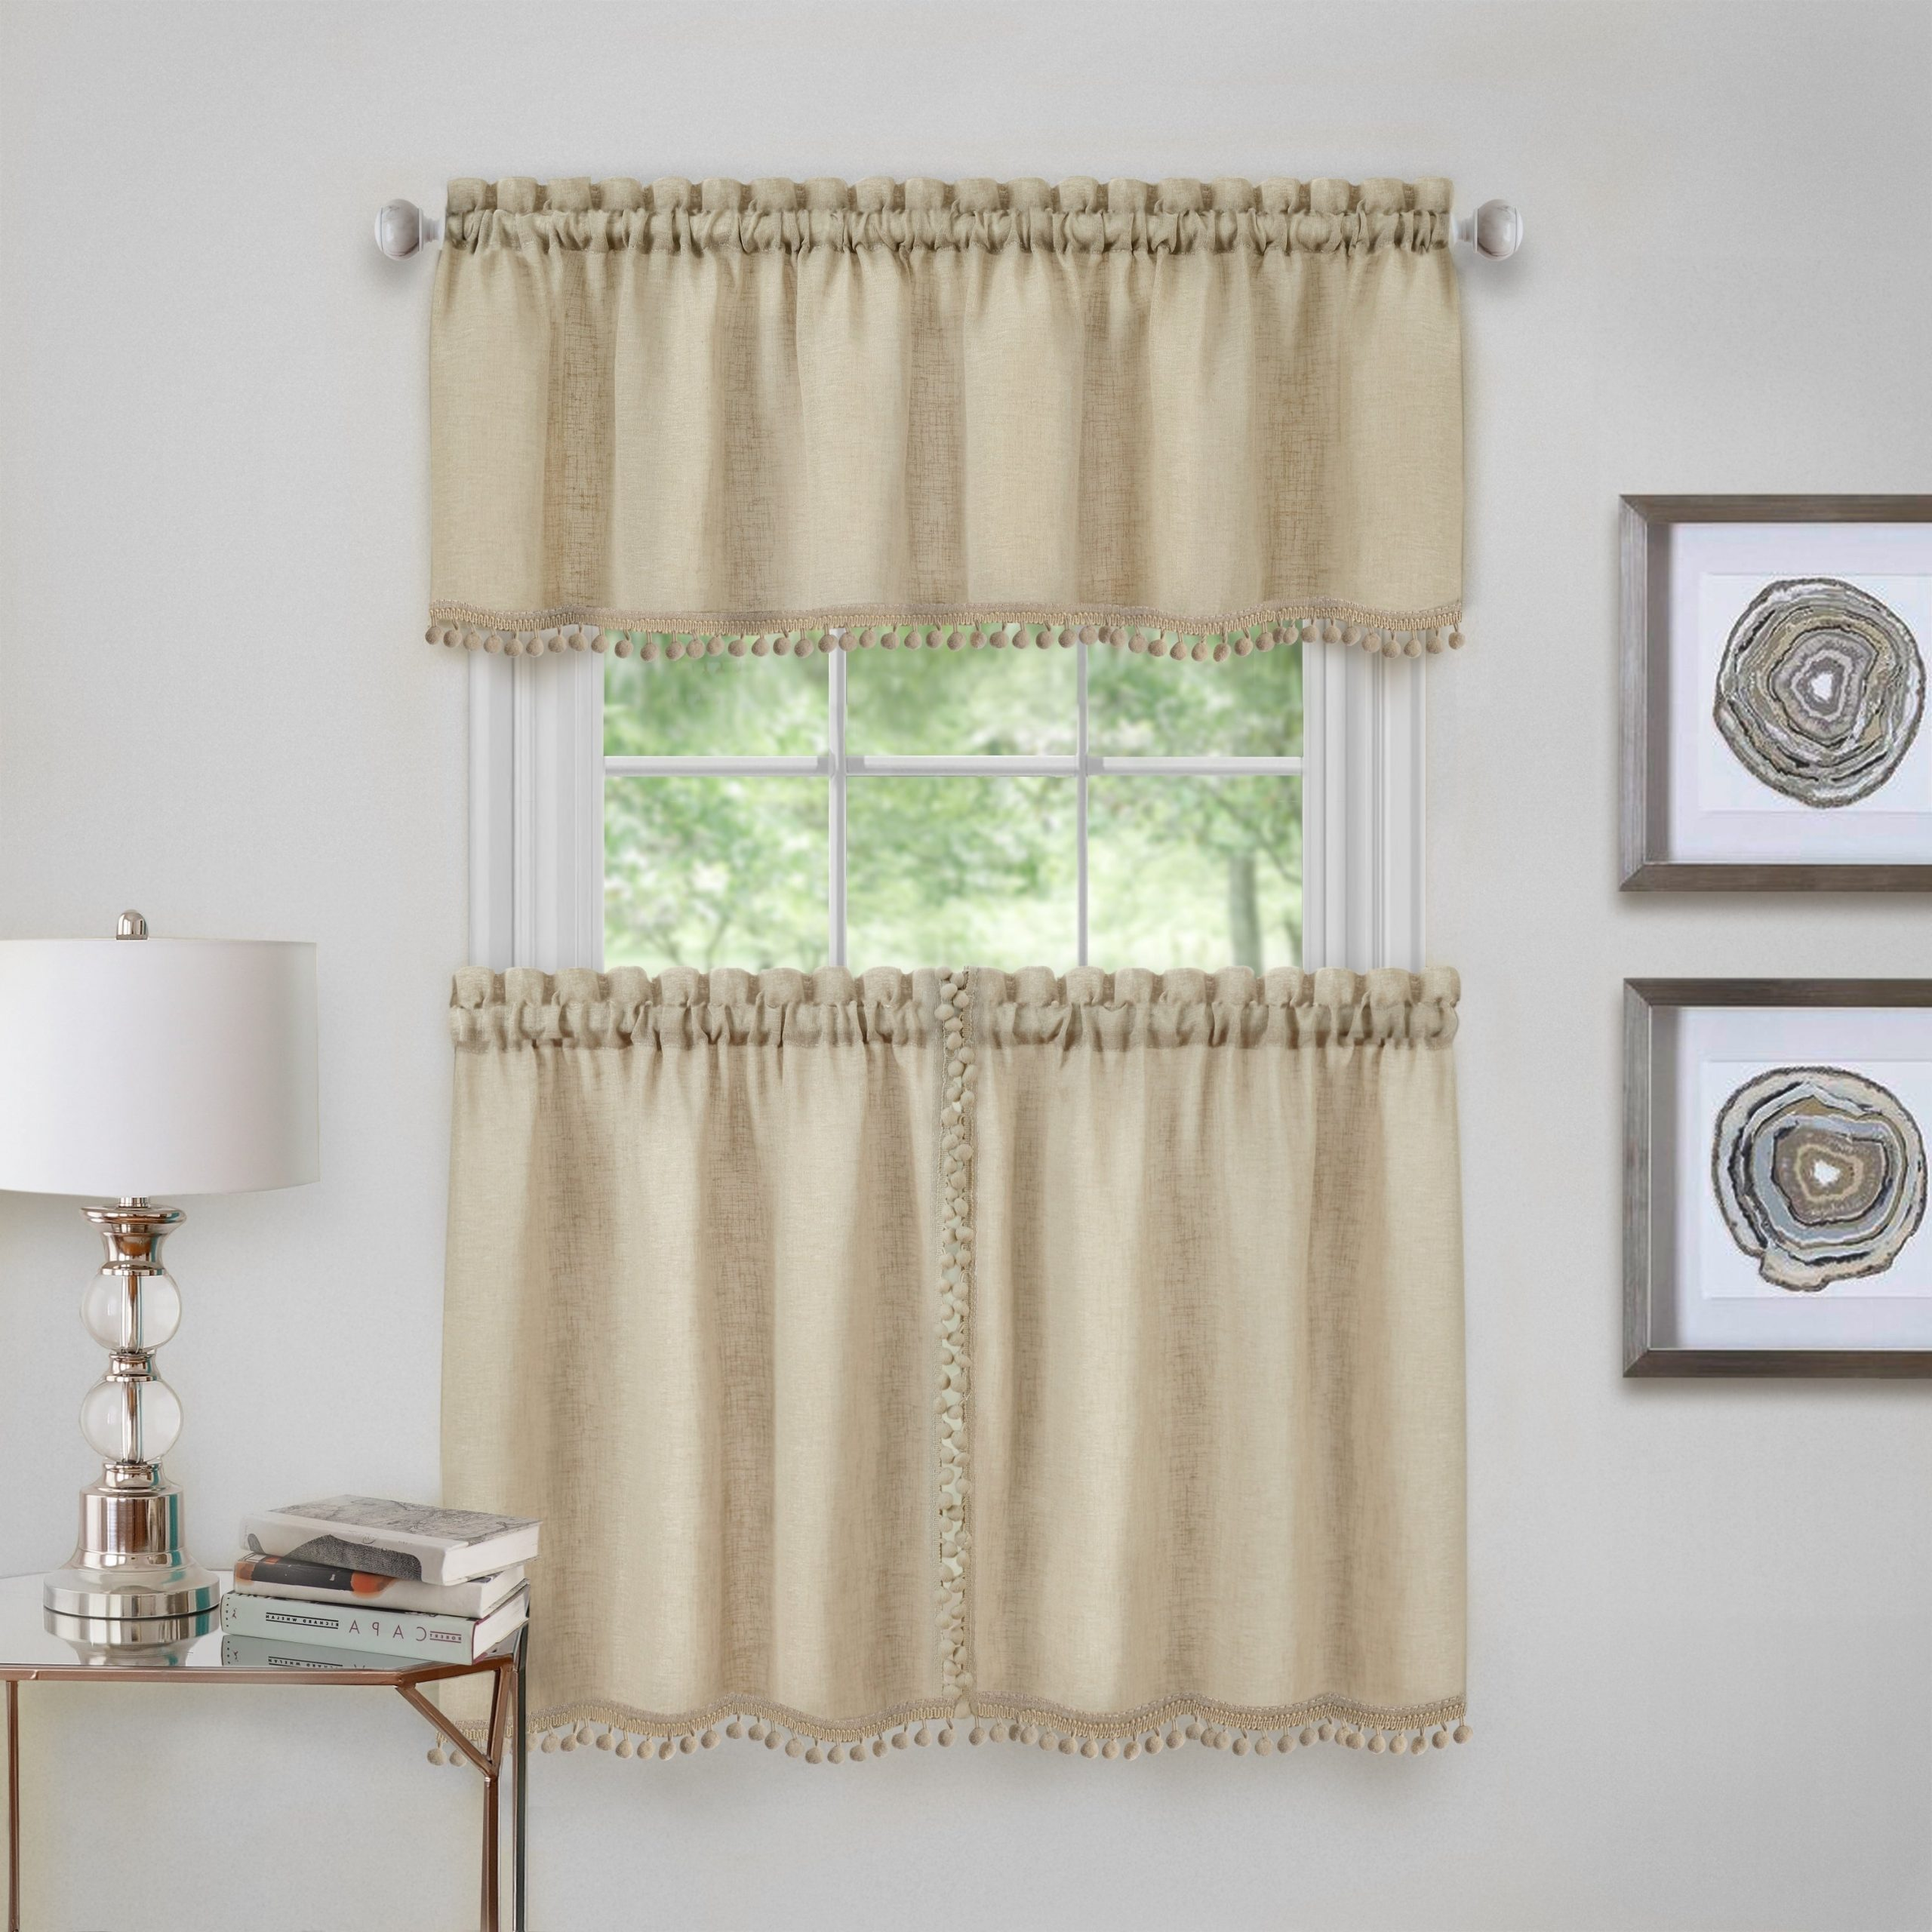 Trendy Wallace Window Kitchen Curtain Tier Pair And Valance Set Throughout Wallace Window Kitchen Curtain Tiers (View 2 of 20)